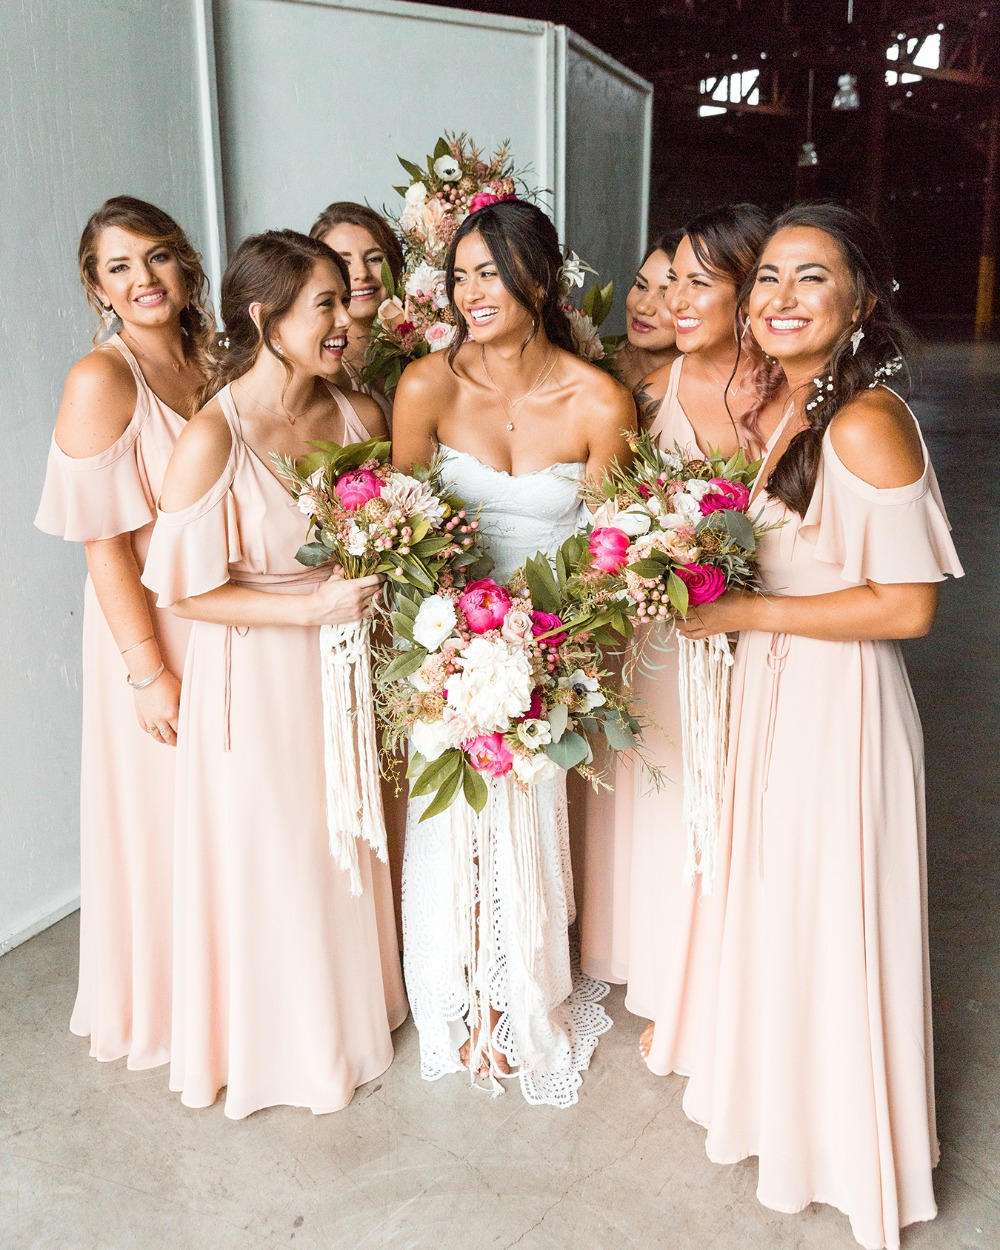 off-shoulder bridesmaid dresses